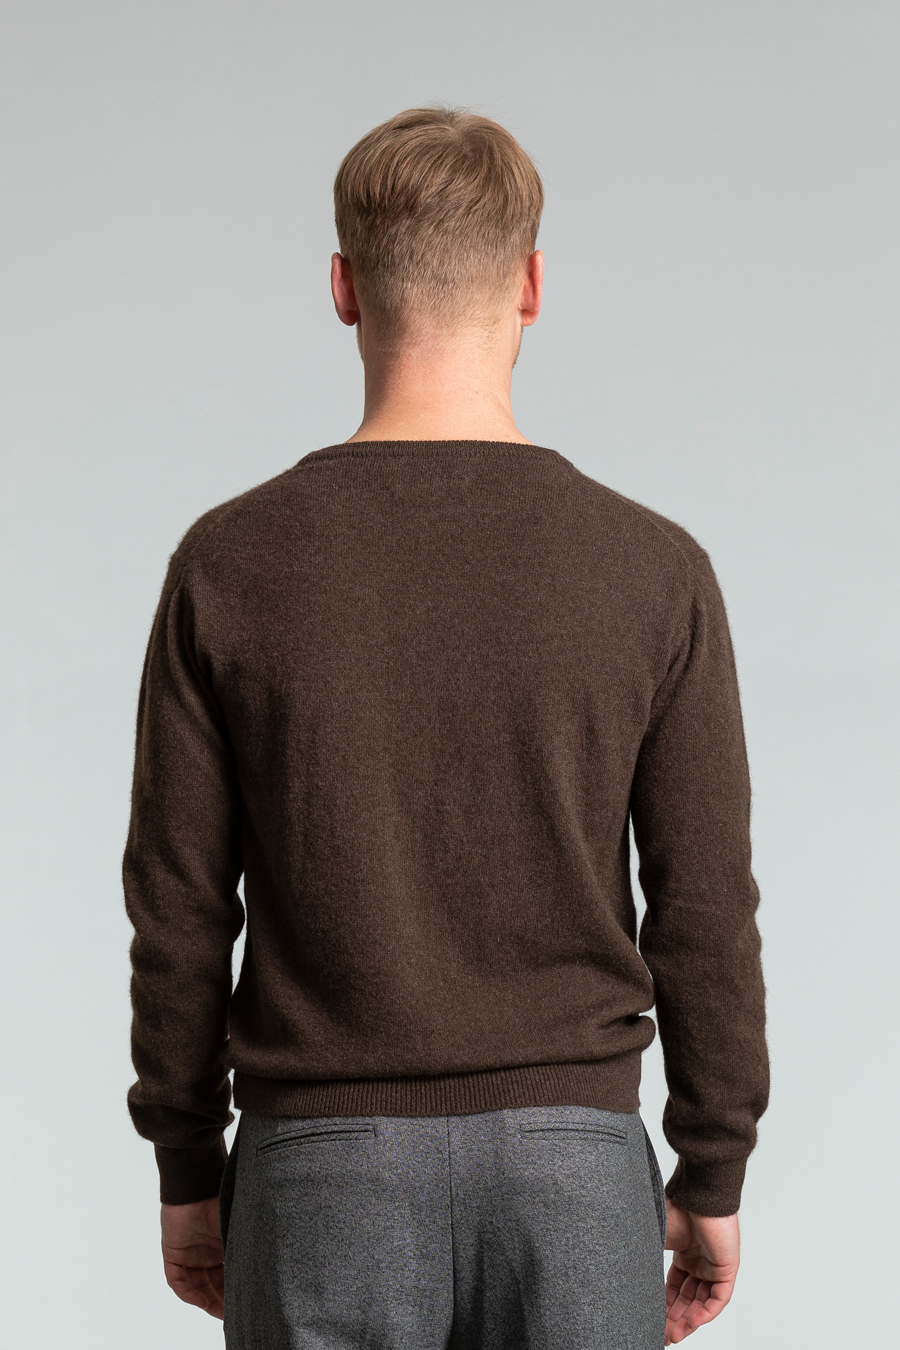 Dinadi - YAK Sweater, Dark Brown